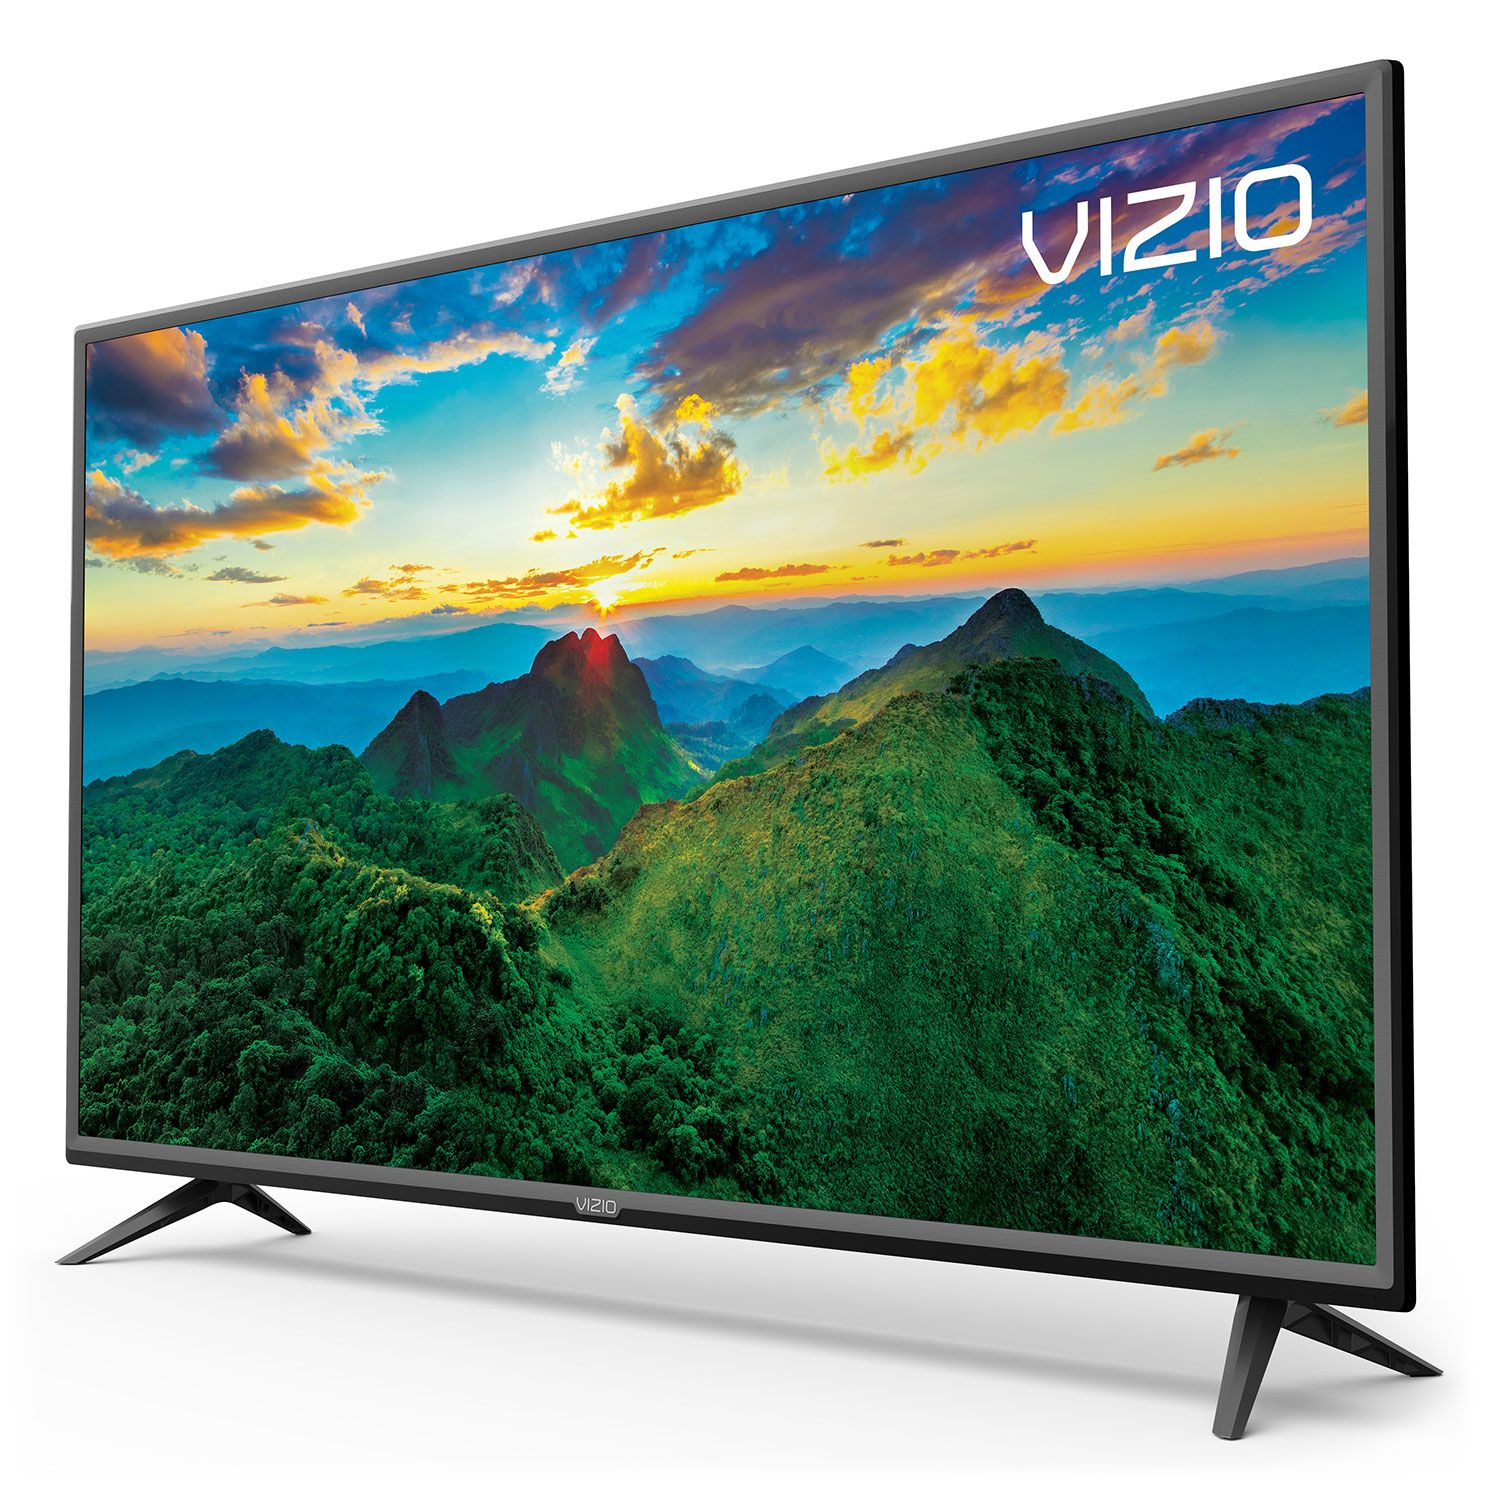 43 Inch Tv Hd 43 Inch Tv Camden Tradeshow Event Furnishings